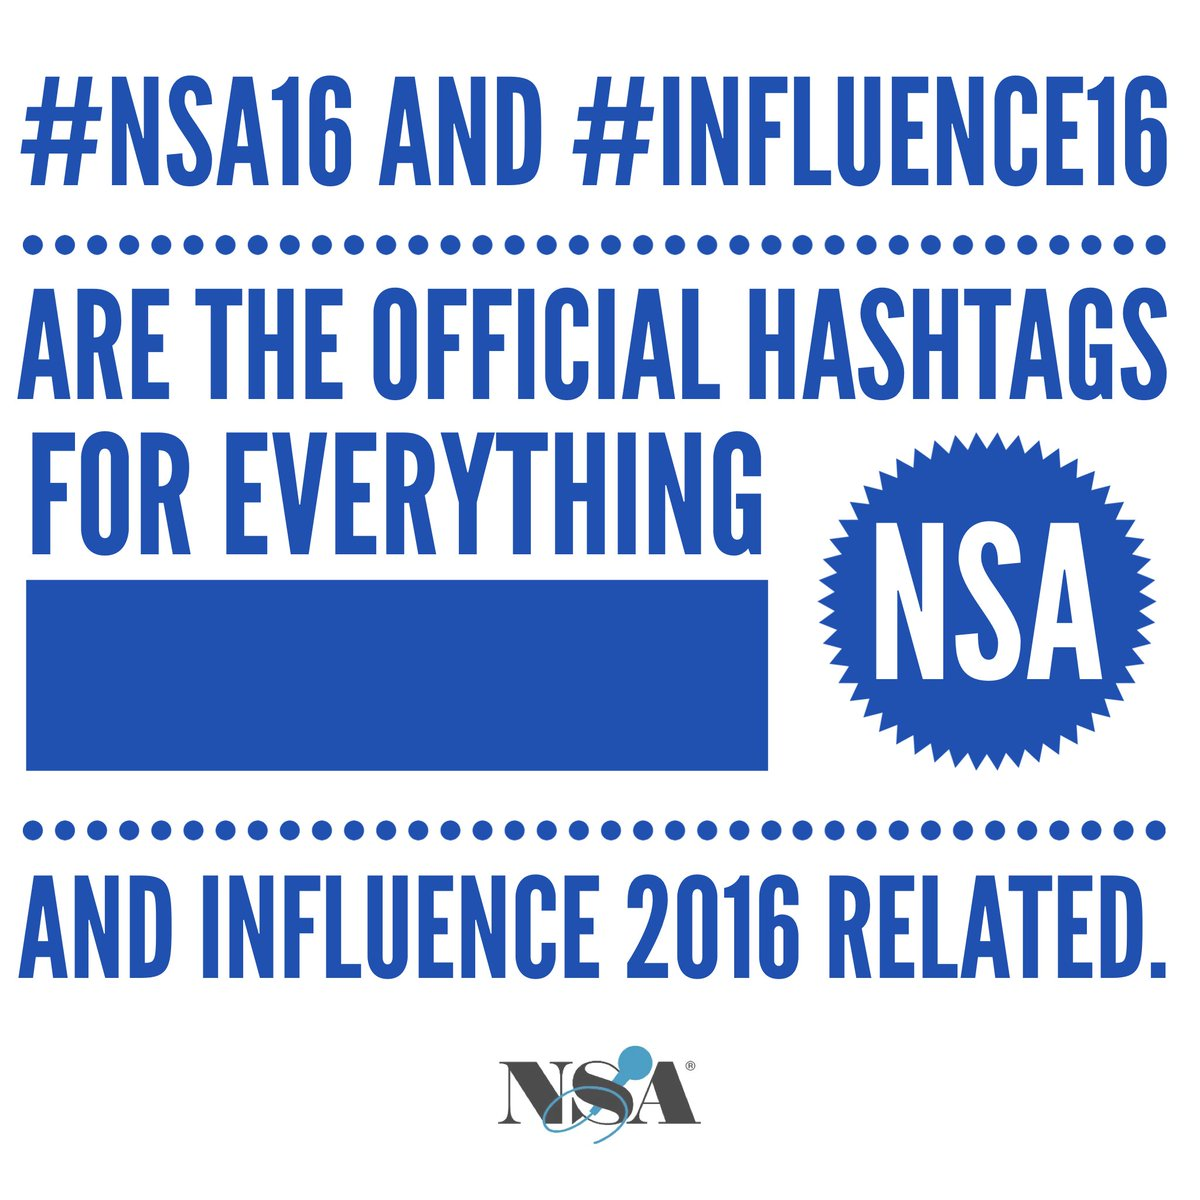 Be sure to include the official #NSA16 and #Influence16 hashtags in your tweets/posts so everyone can follow along. https://t.co/fRtn8XiWPz